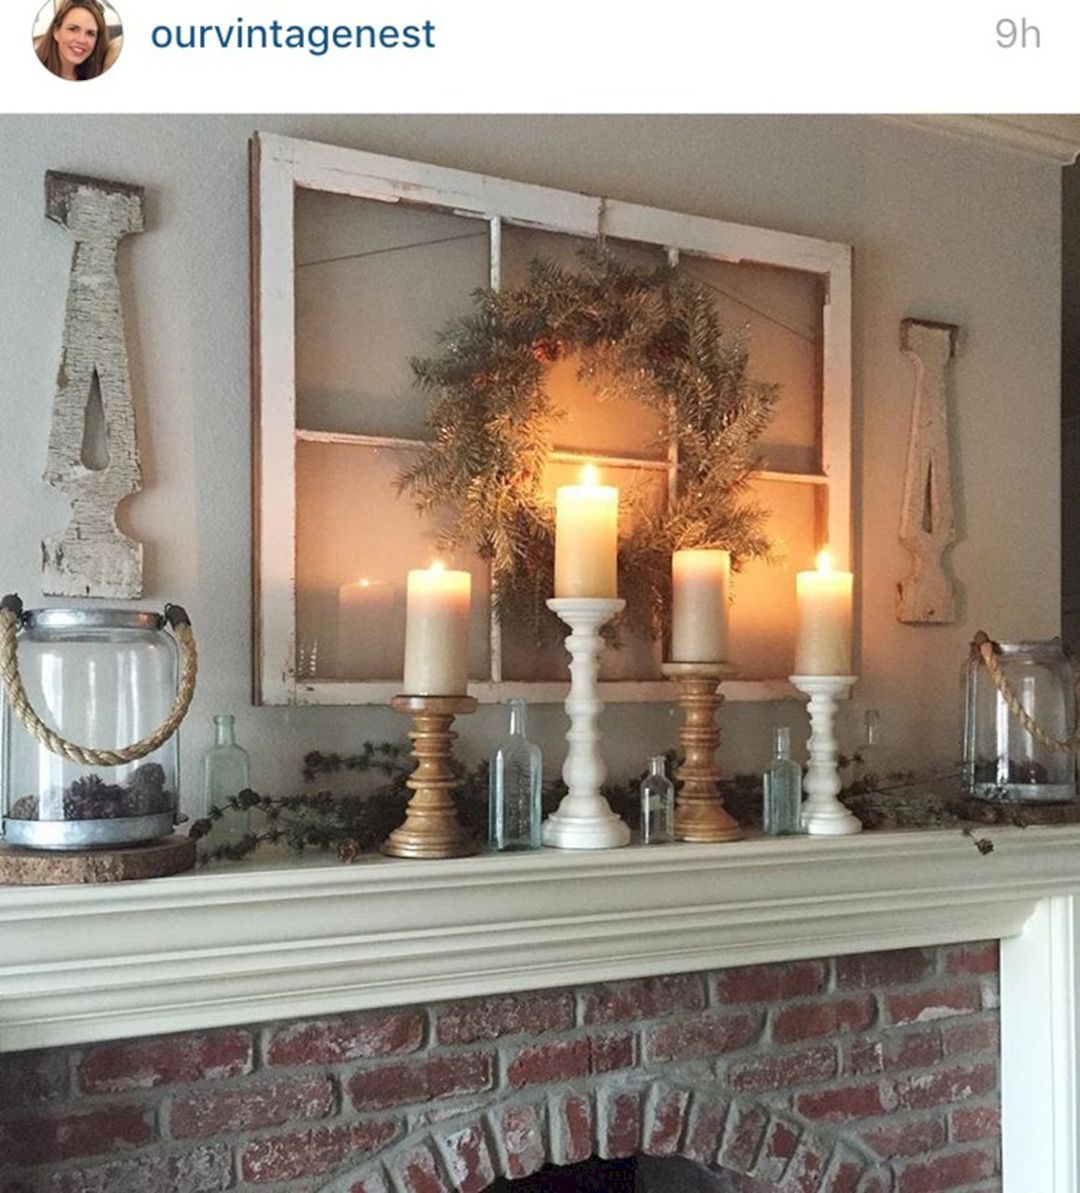 Fall Fireplace Mantel Decorating Ideas: 85+ Best Pictures: Stunning Fall Mantel Decor Ideas To